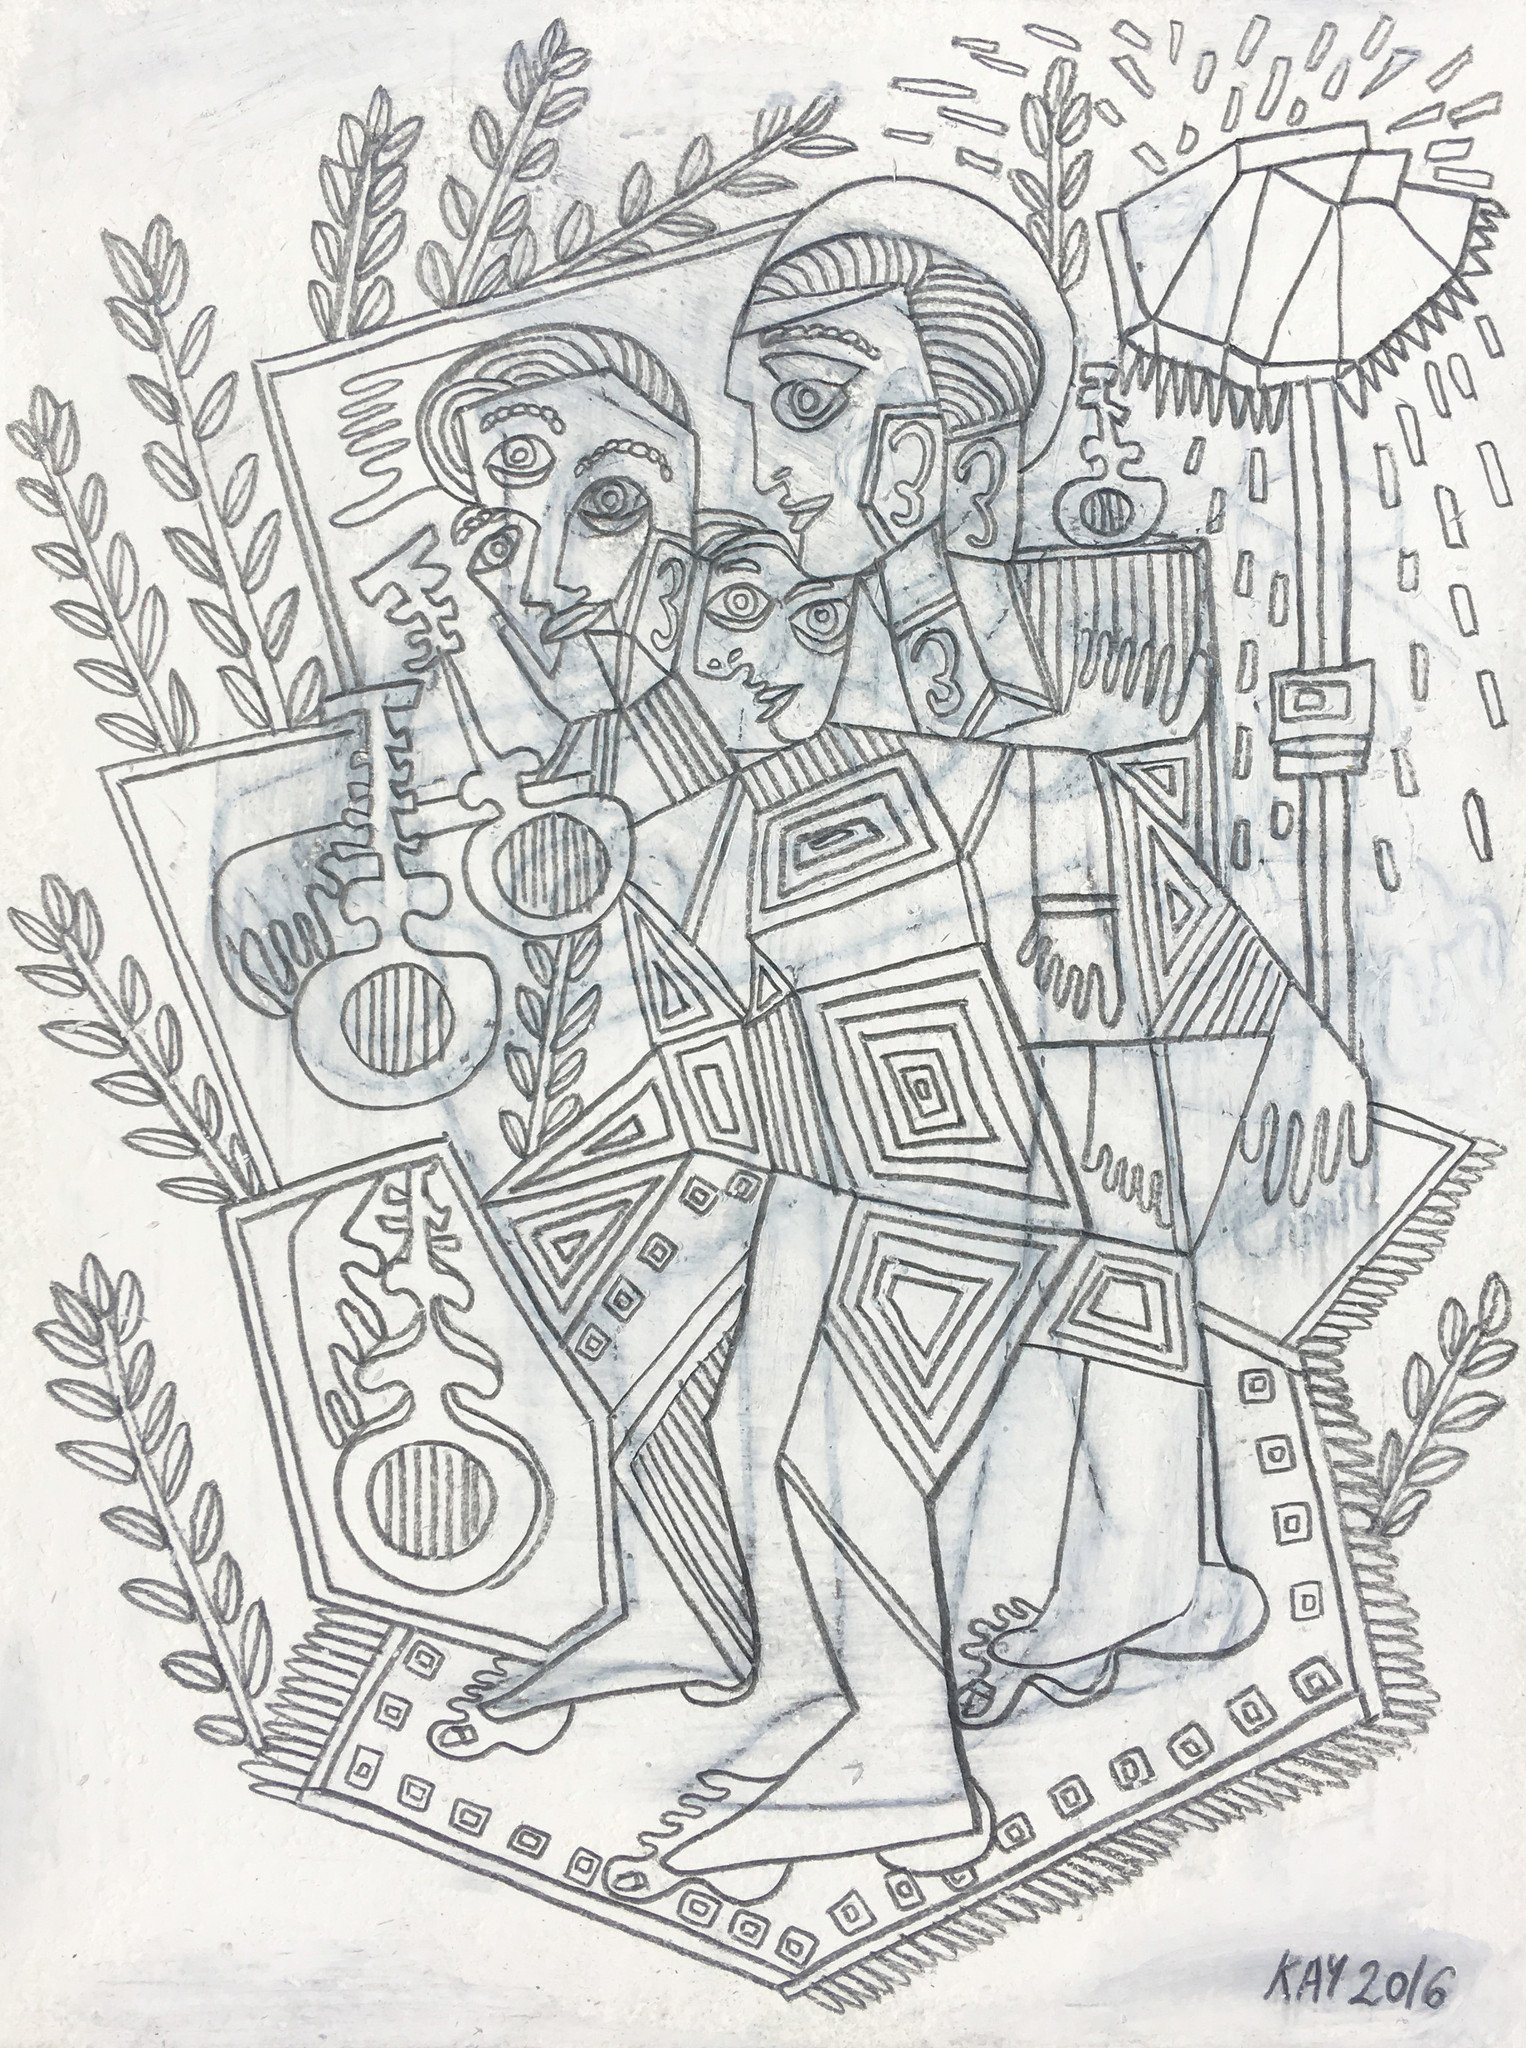 OIL DRAWING 29 - WILL KAY$350This drawing is from my series of oil and pencil on paper. Common themes mused upon are figures, animals, plants, music, asymmetry and rhythm.description: oil and pencil on paper, 6